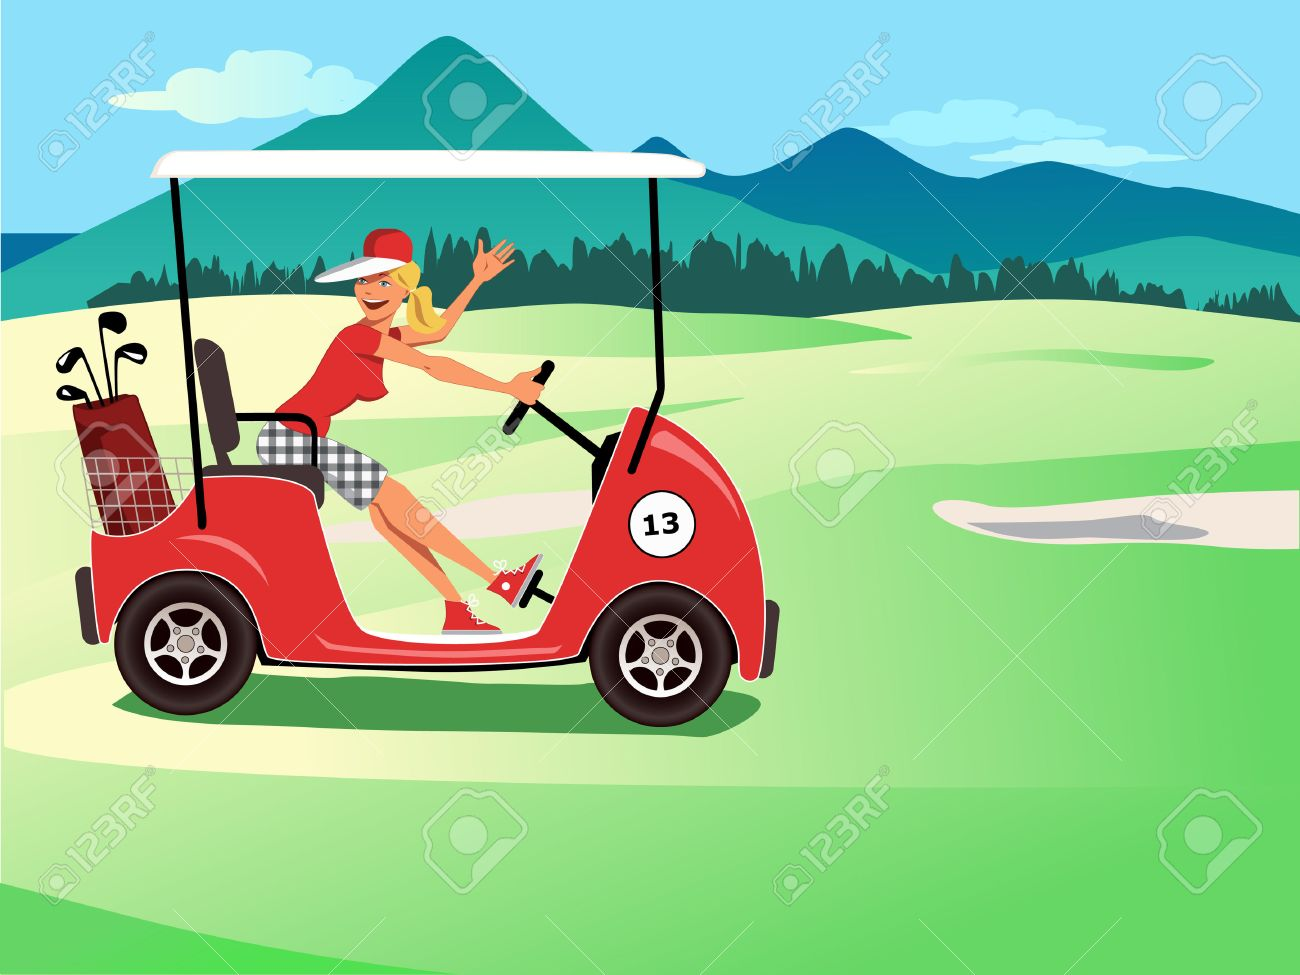 1300x975 Golf Cart Stock Photos. Royalty Free Business Images